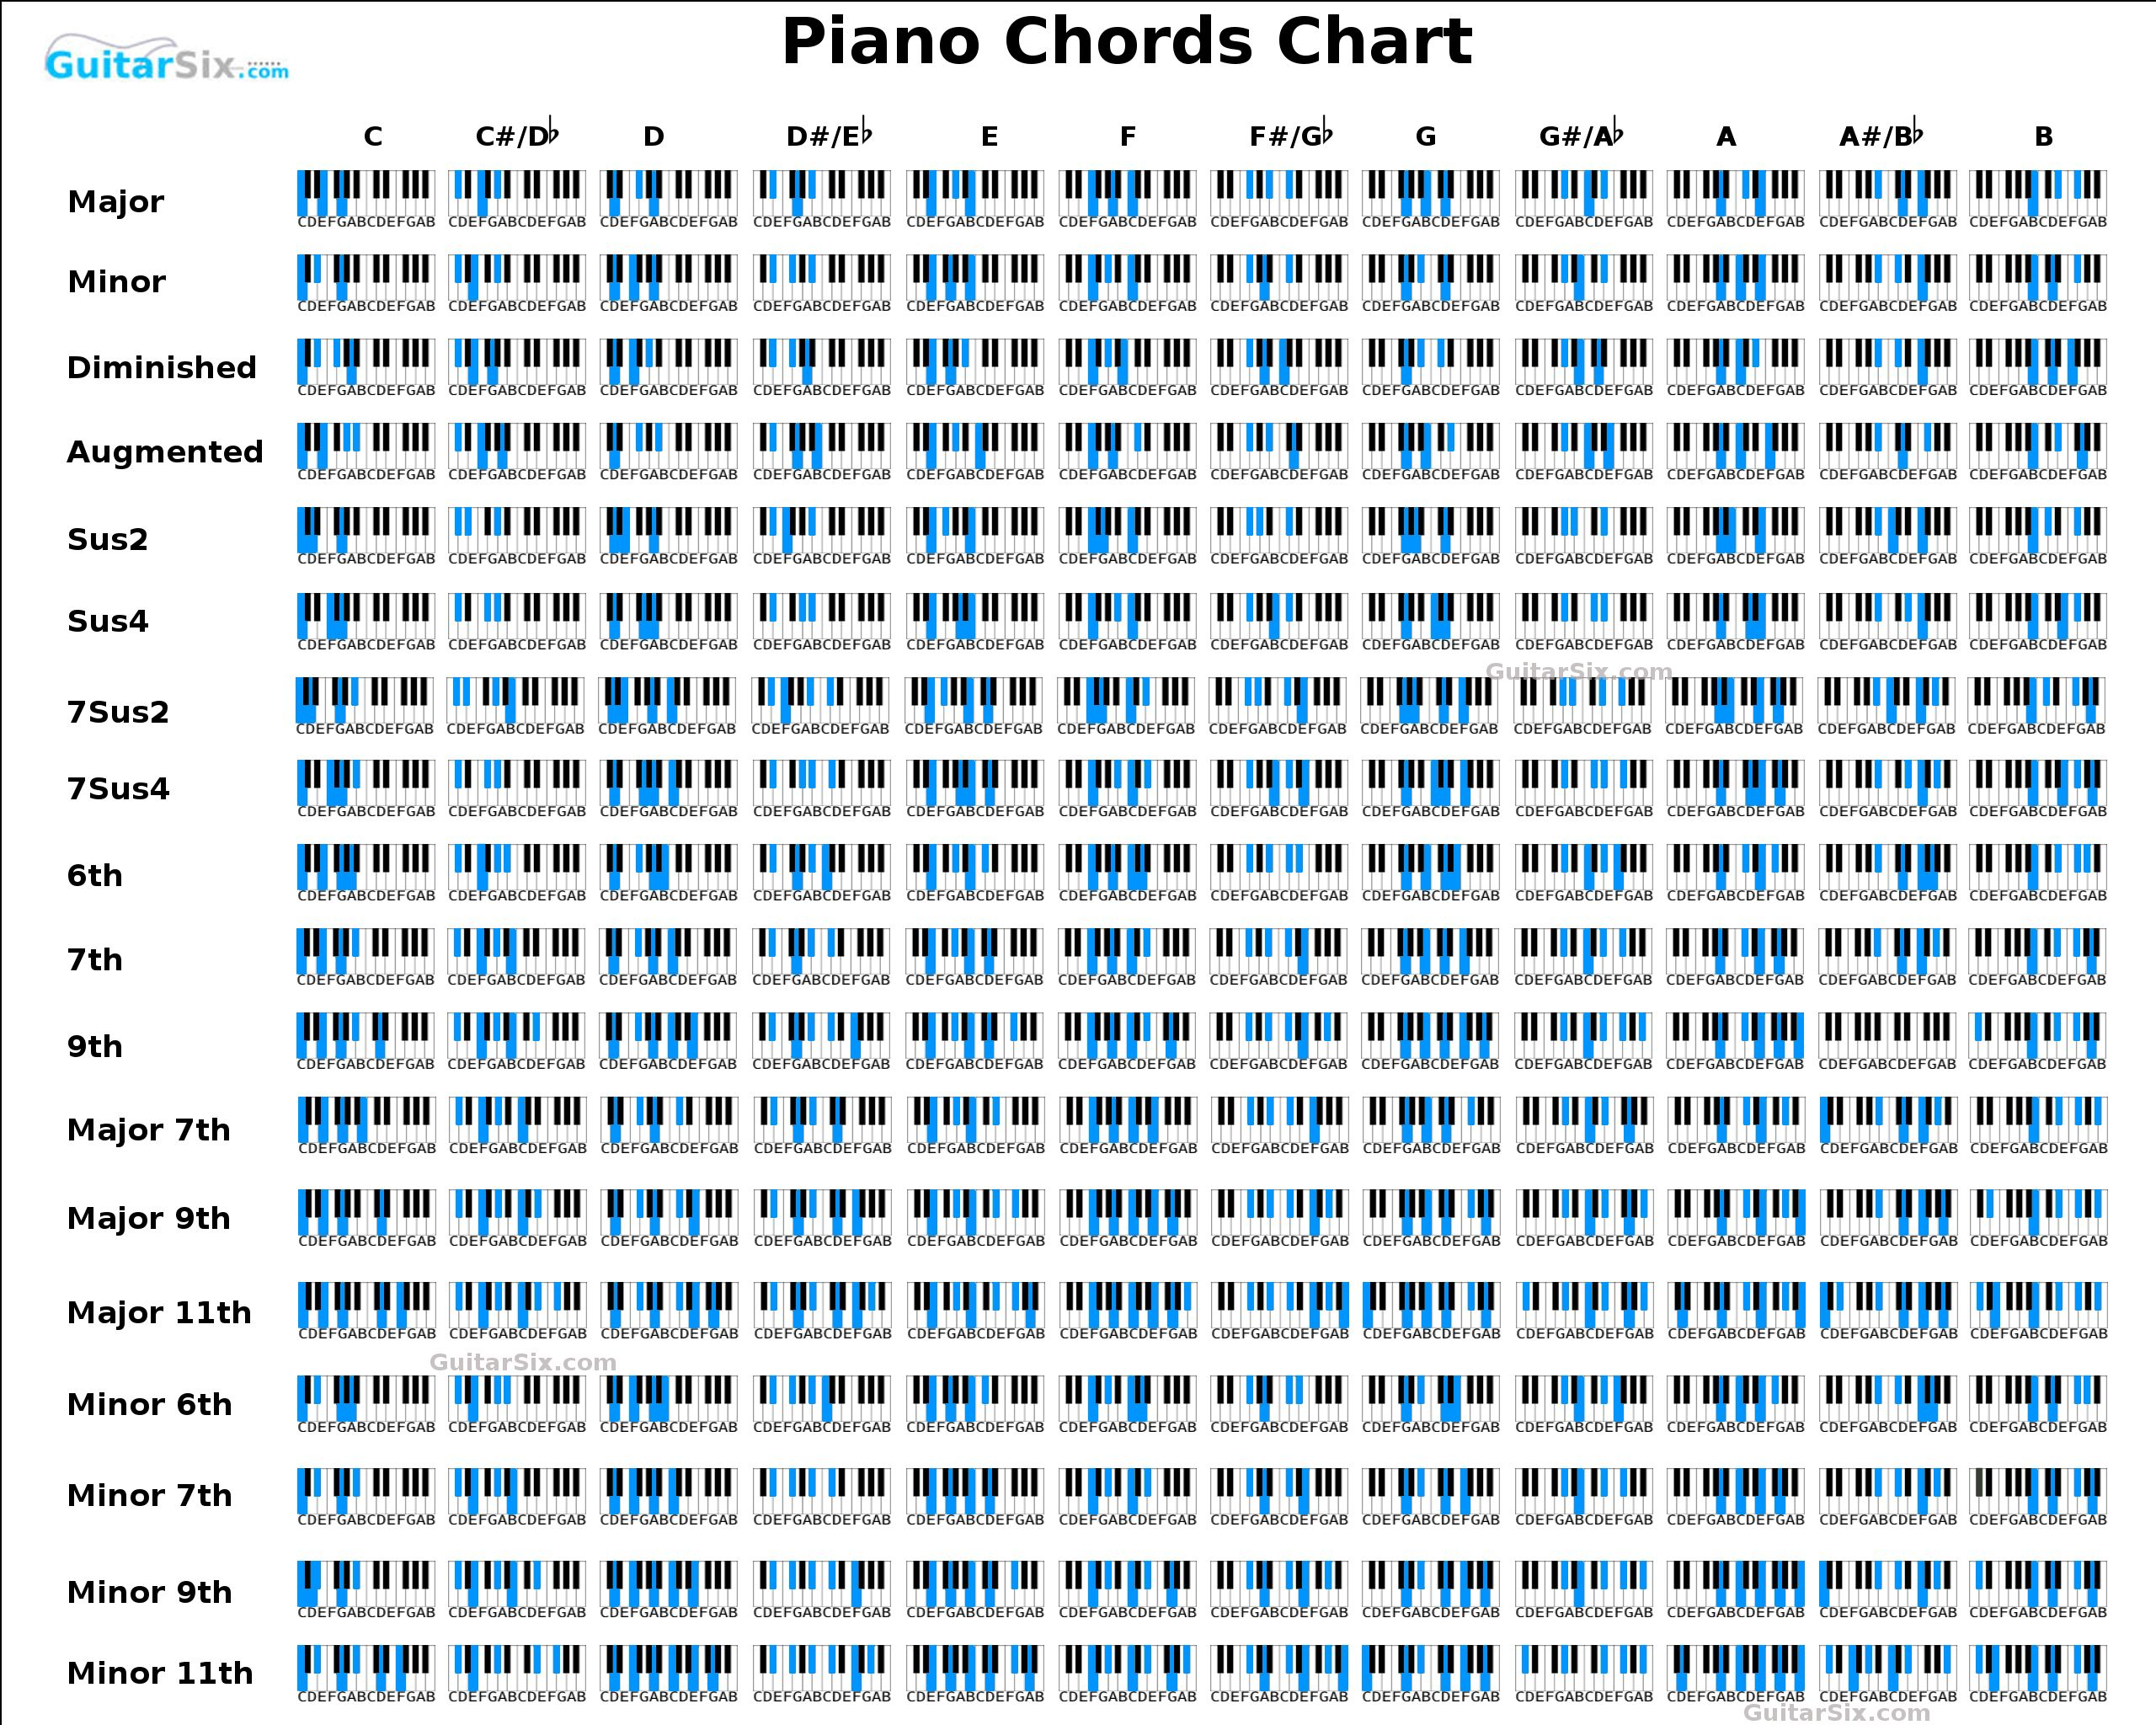 Http guitarsix com downloads piano chord chart jpg music